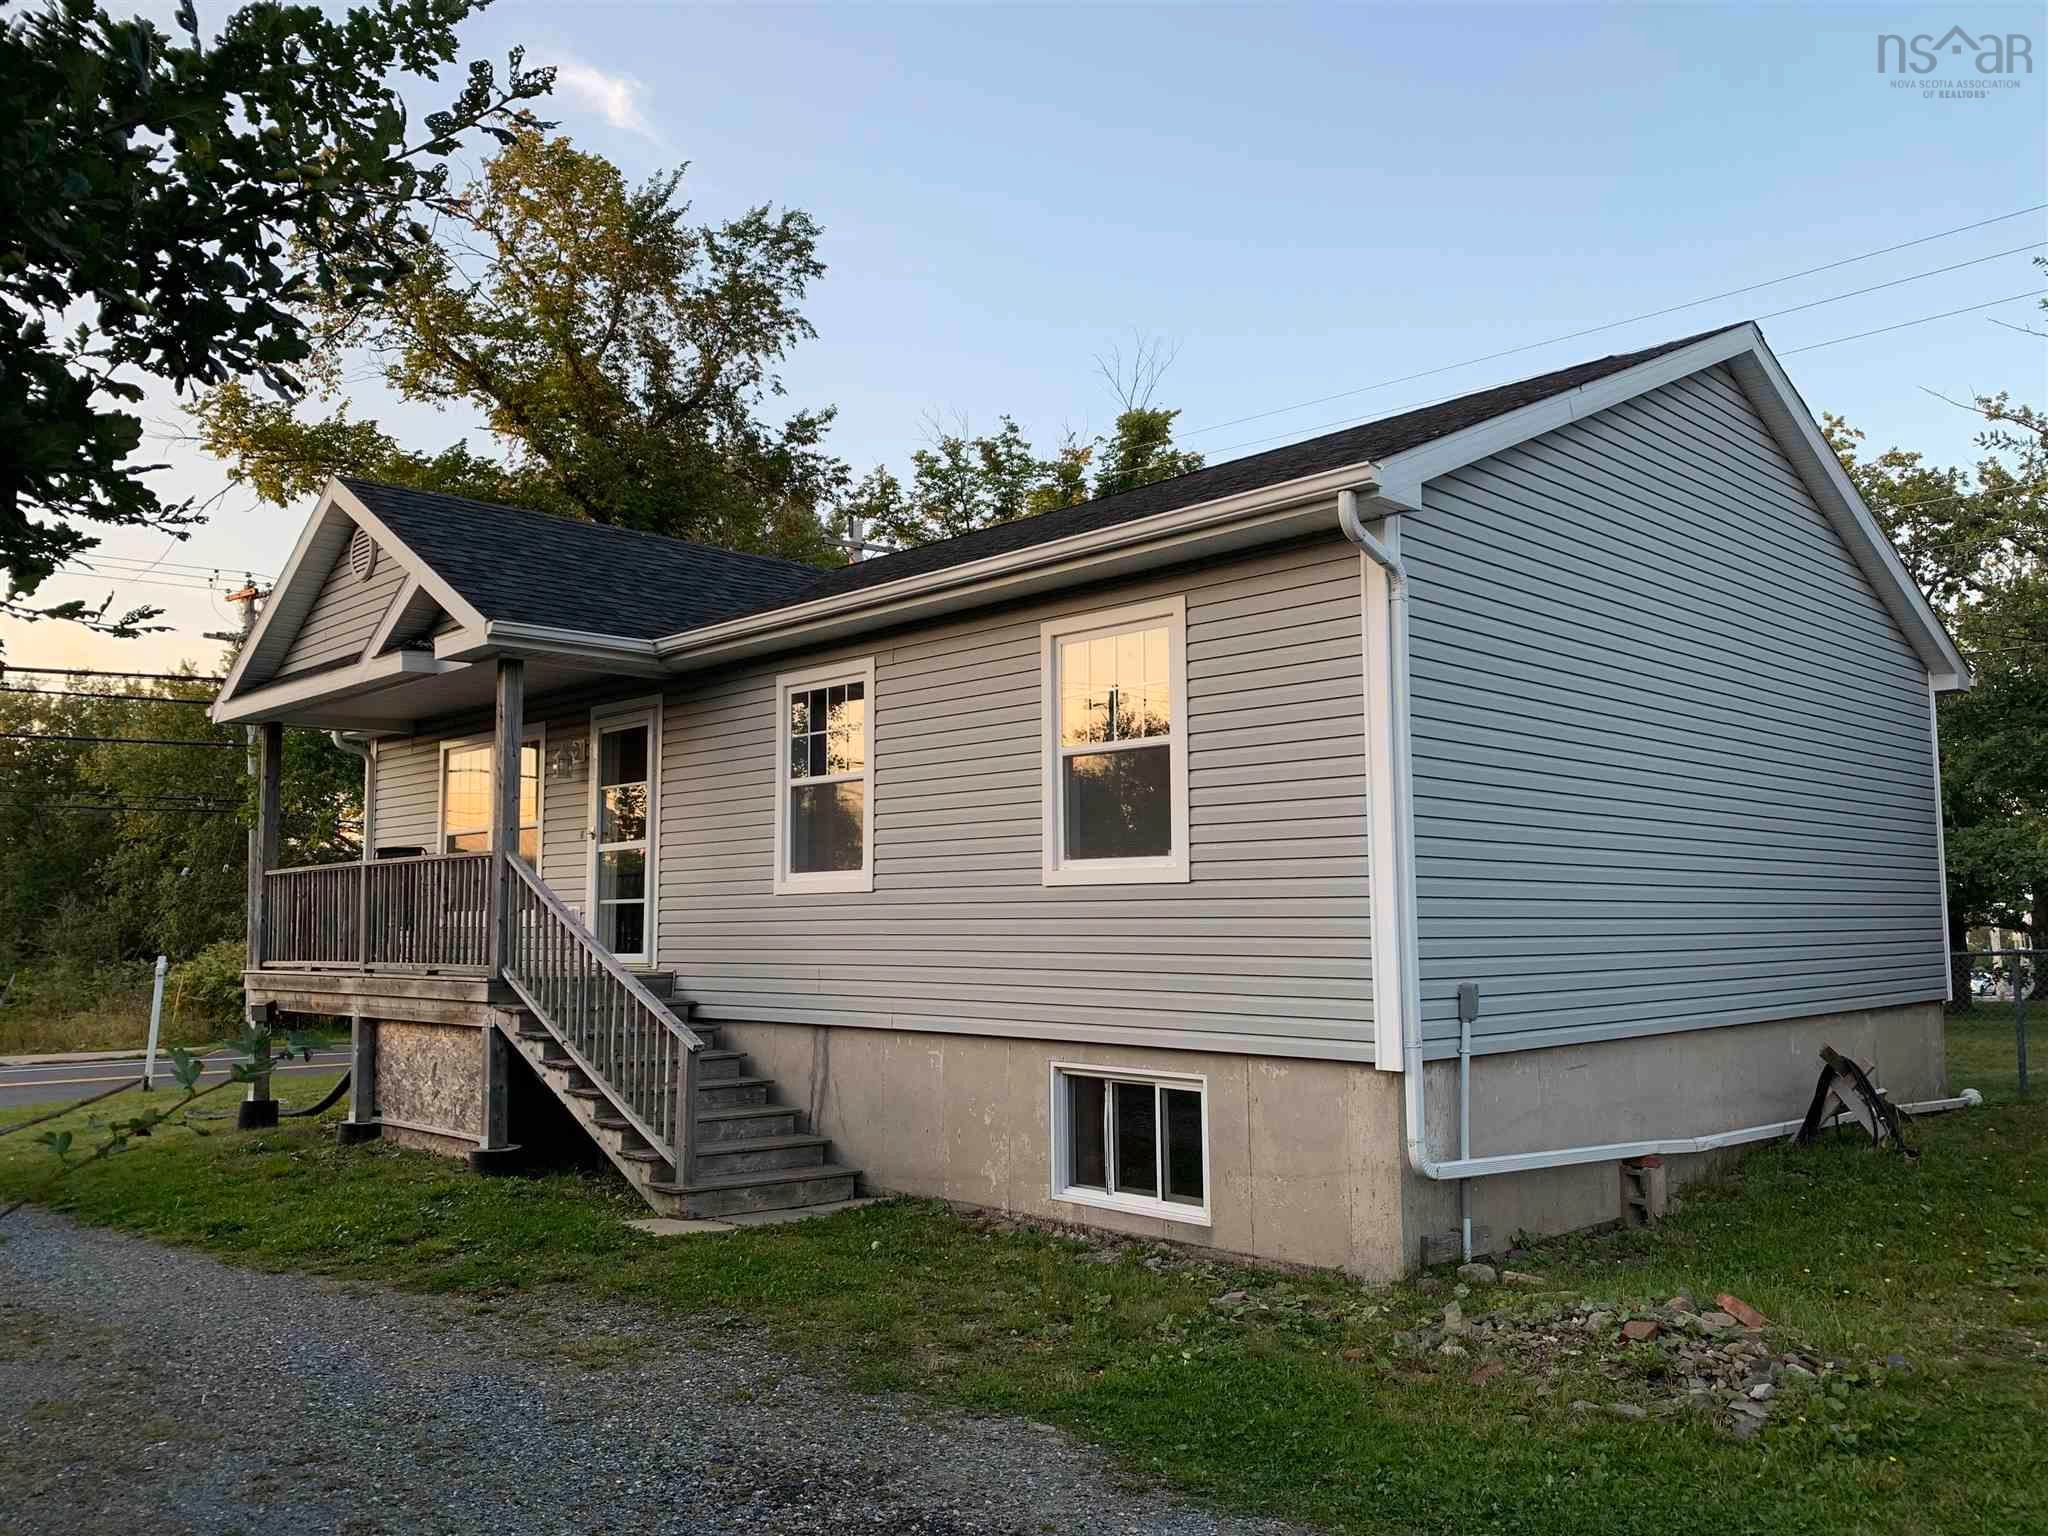 Main Photo: 151 Brookside Street in Glace Bay: 203-Glace Bay Residential for sale (Cape Breton)  : MLS®# 202124418